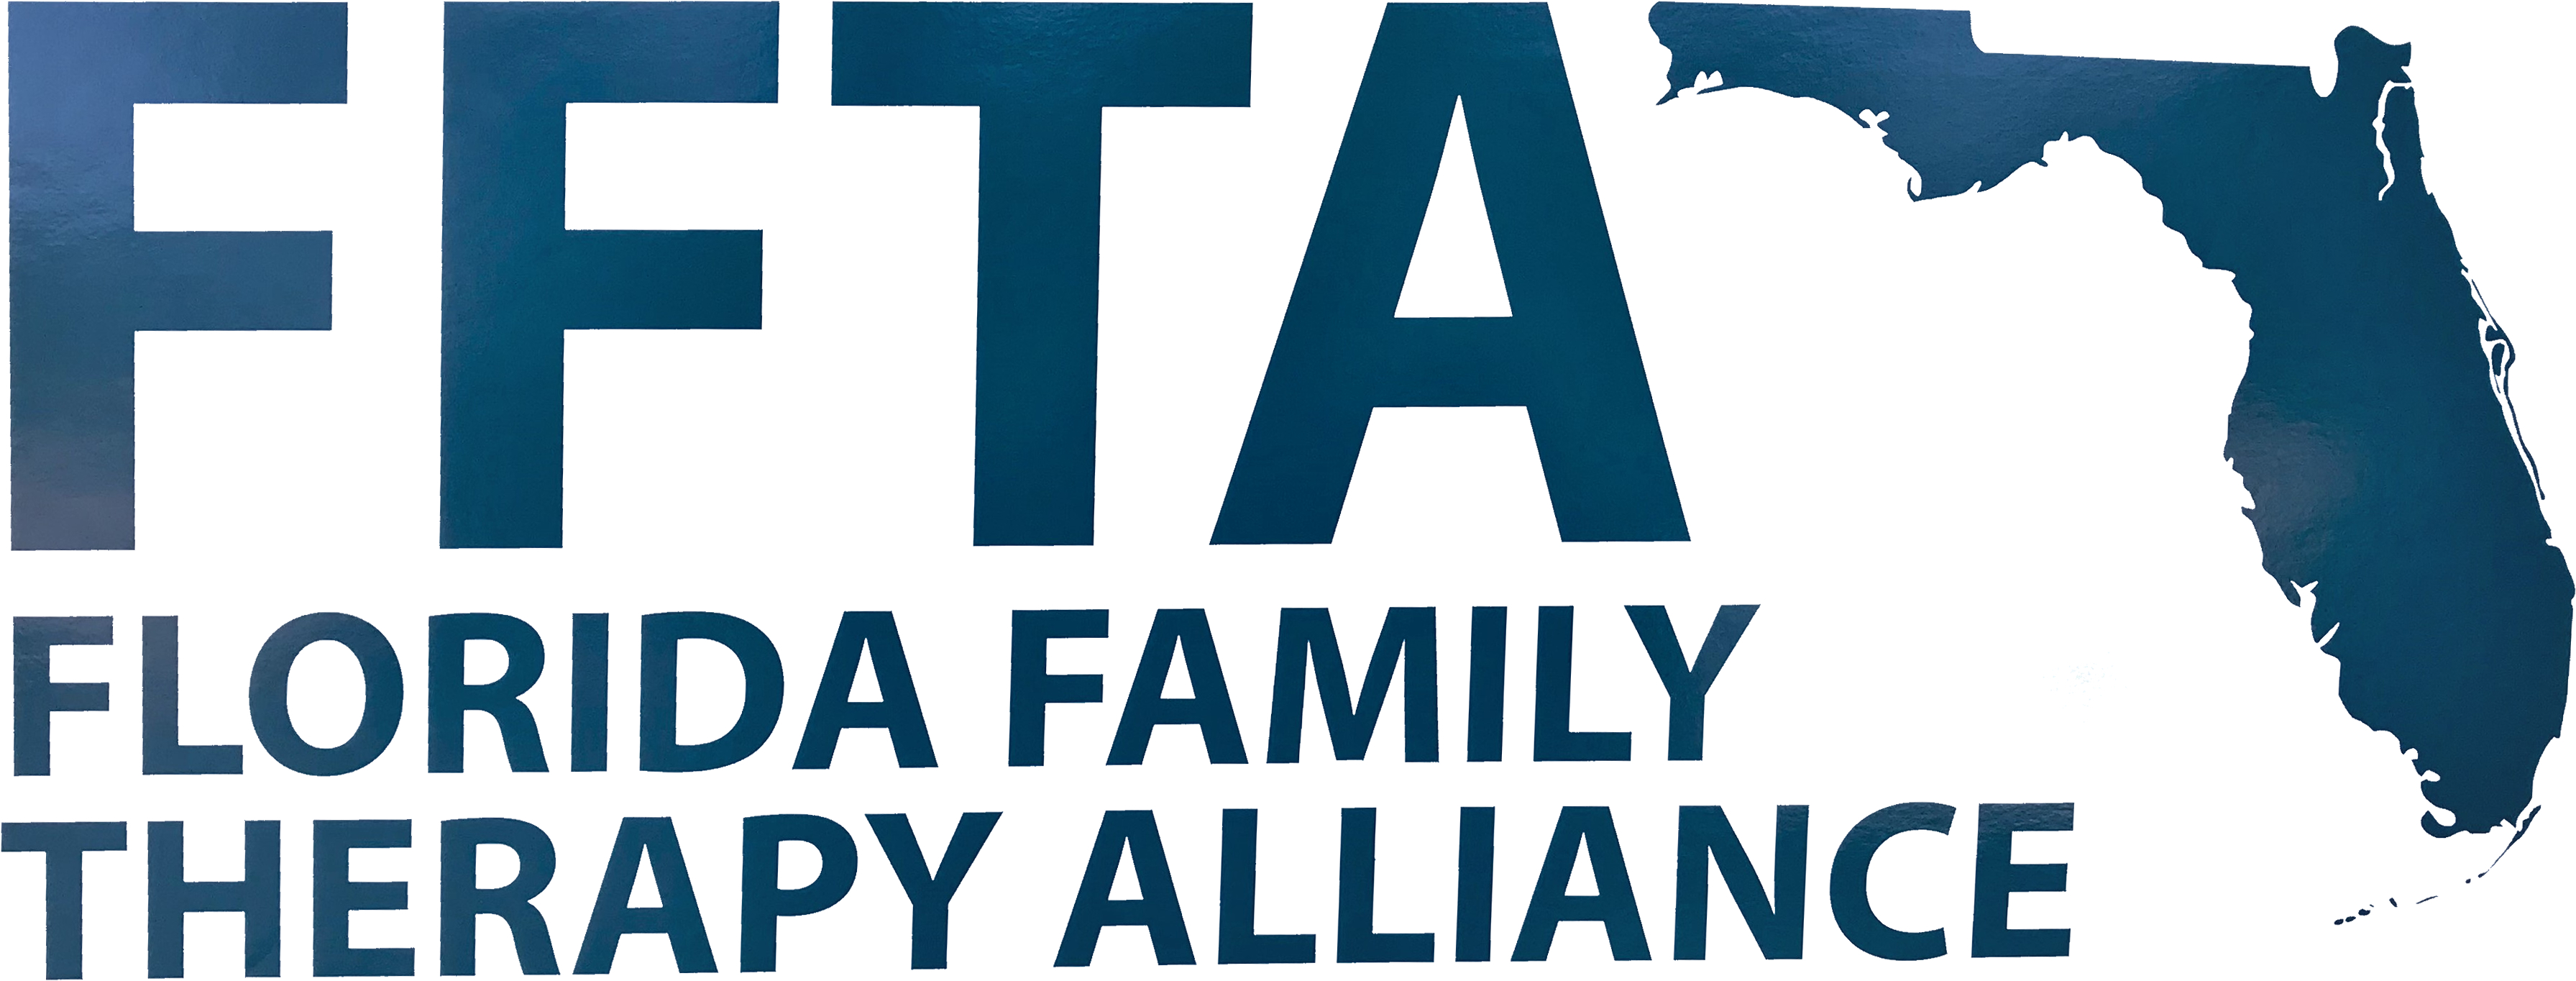 Florida Family Therapy Alliance